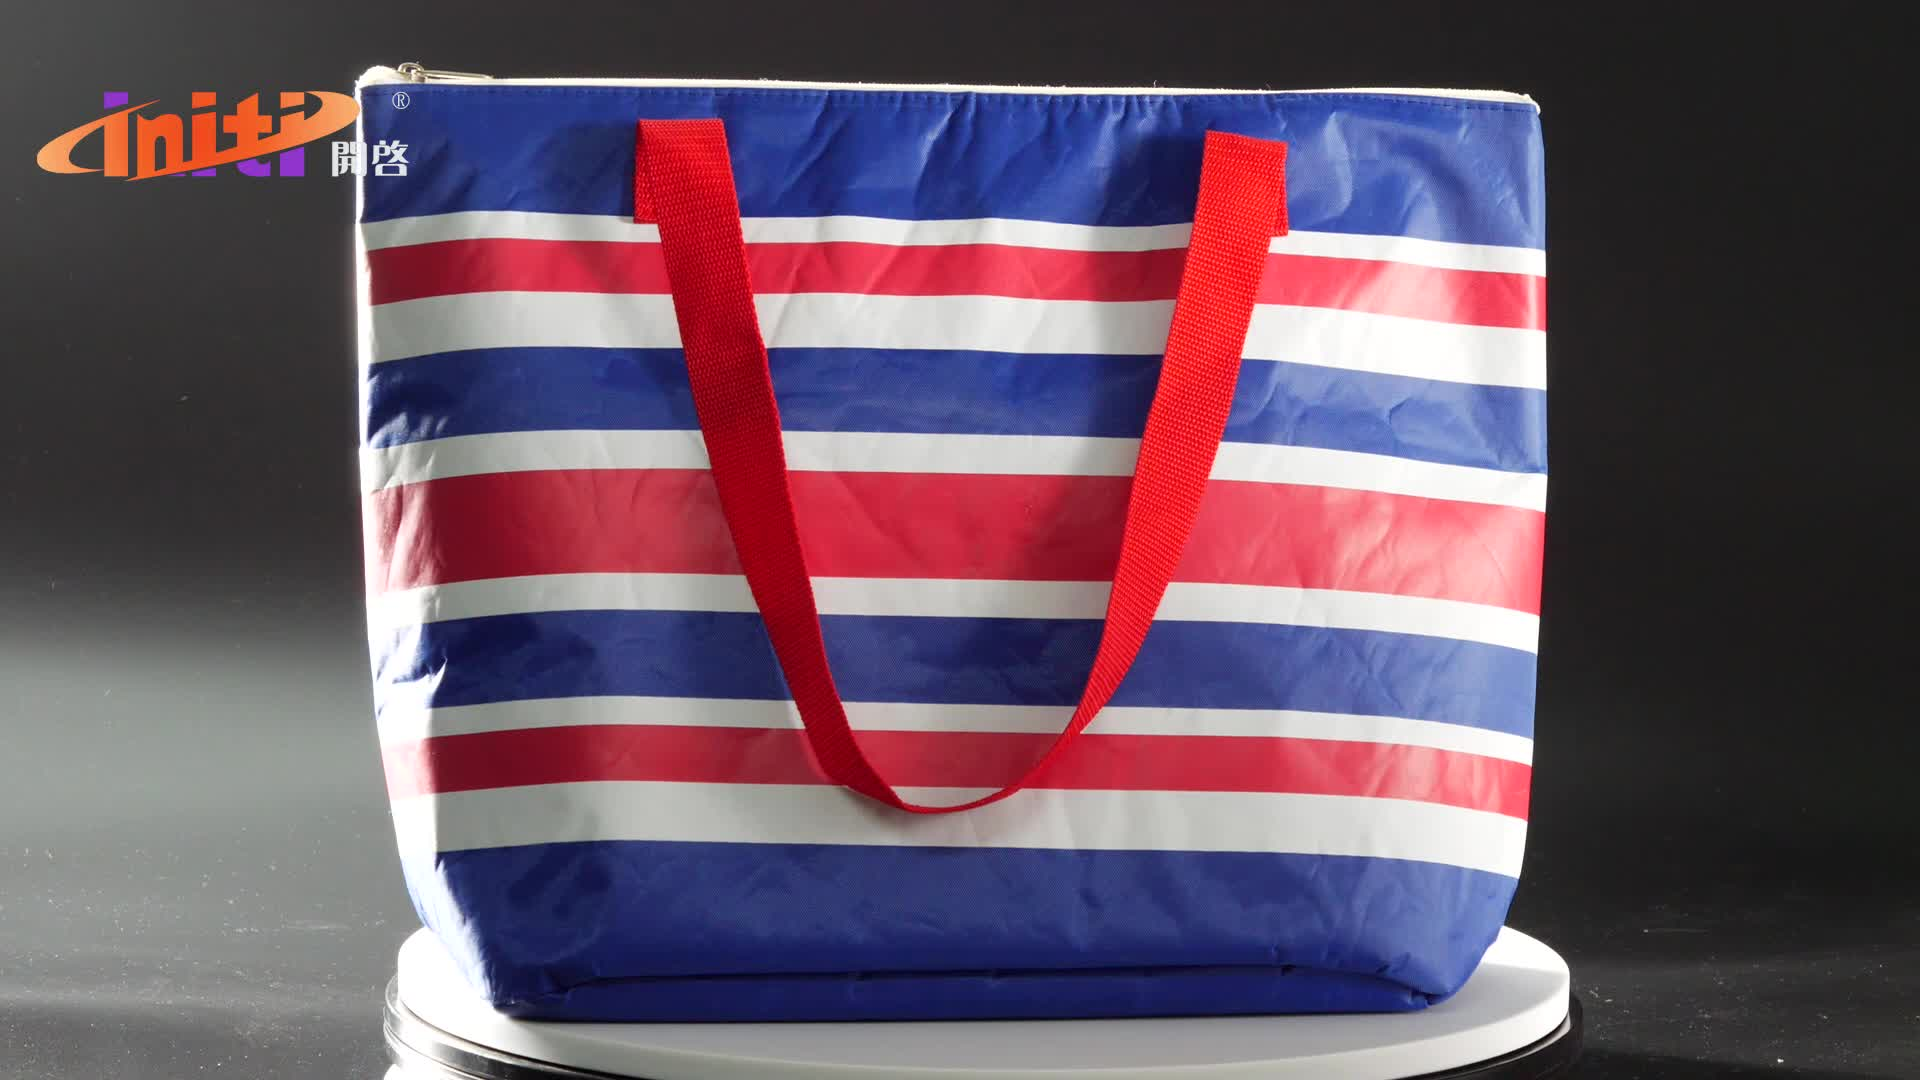 Hot sale New products Insulated Cooler Bags for food